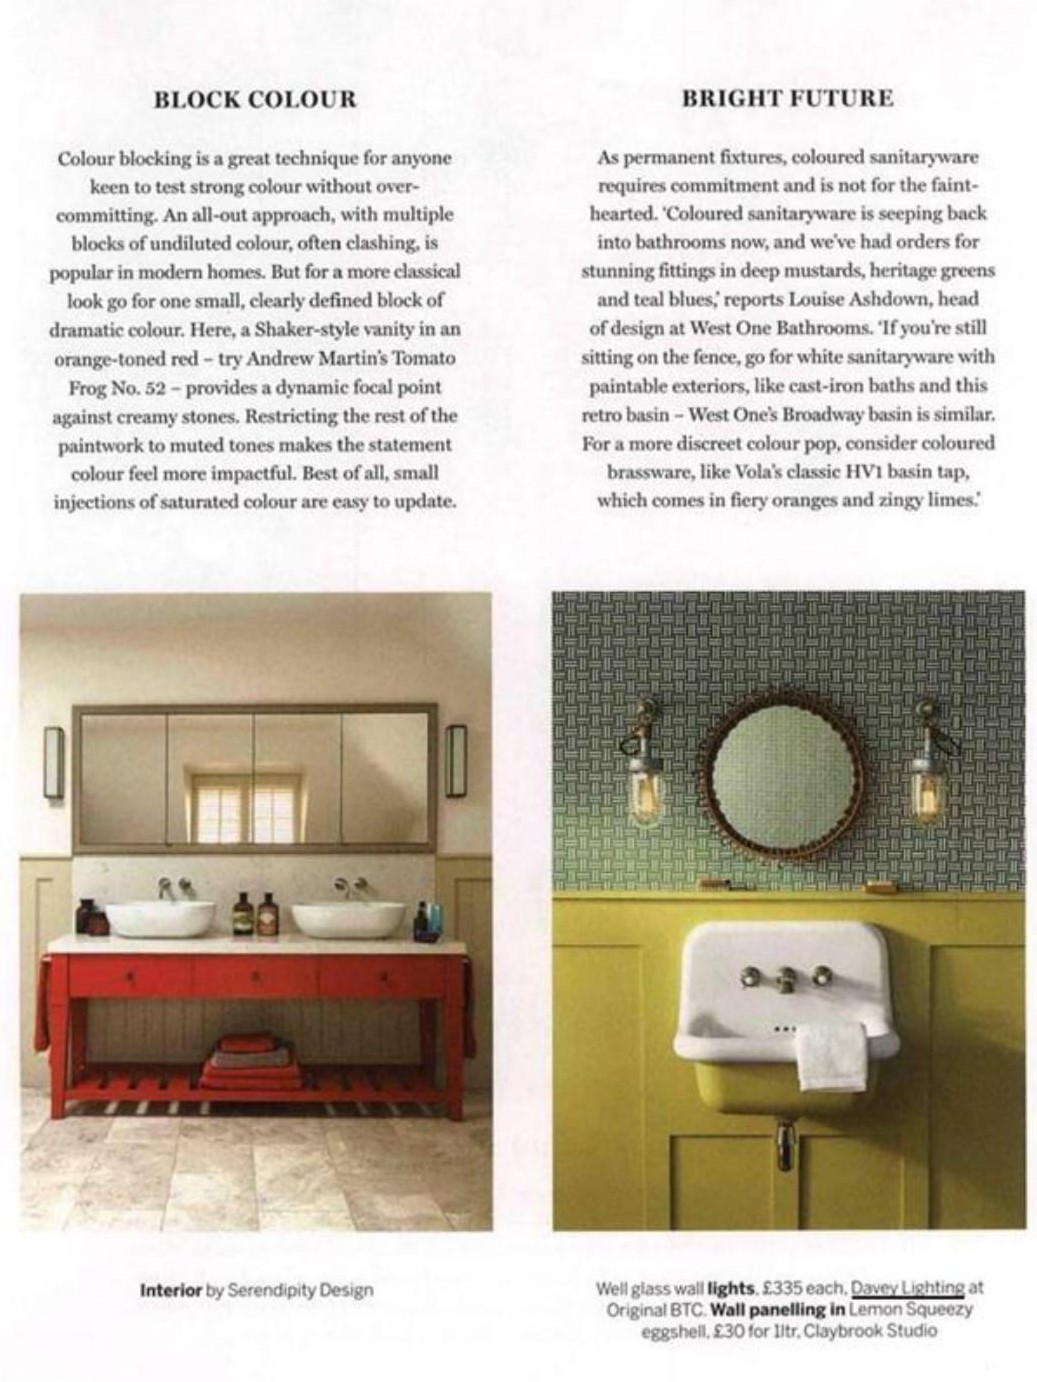 Homes & Gardens see a bright future for your bathroom with Davey's Well Glass wall lights